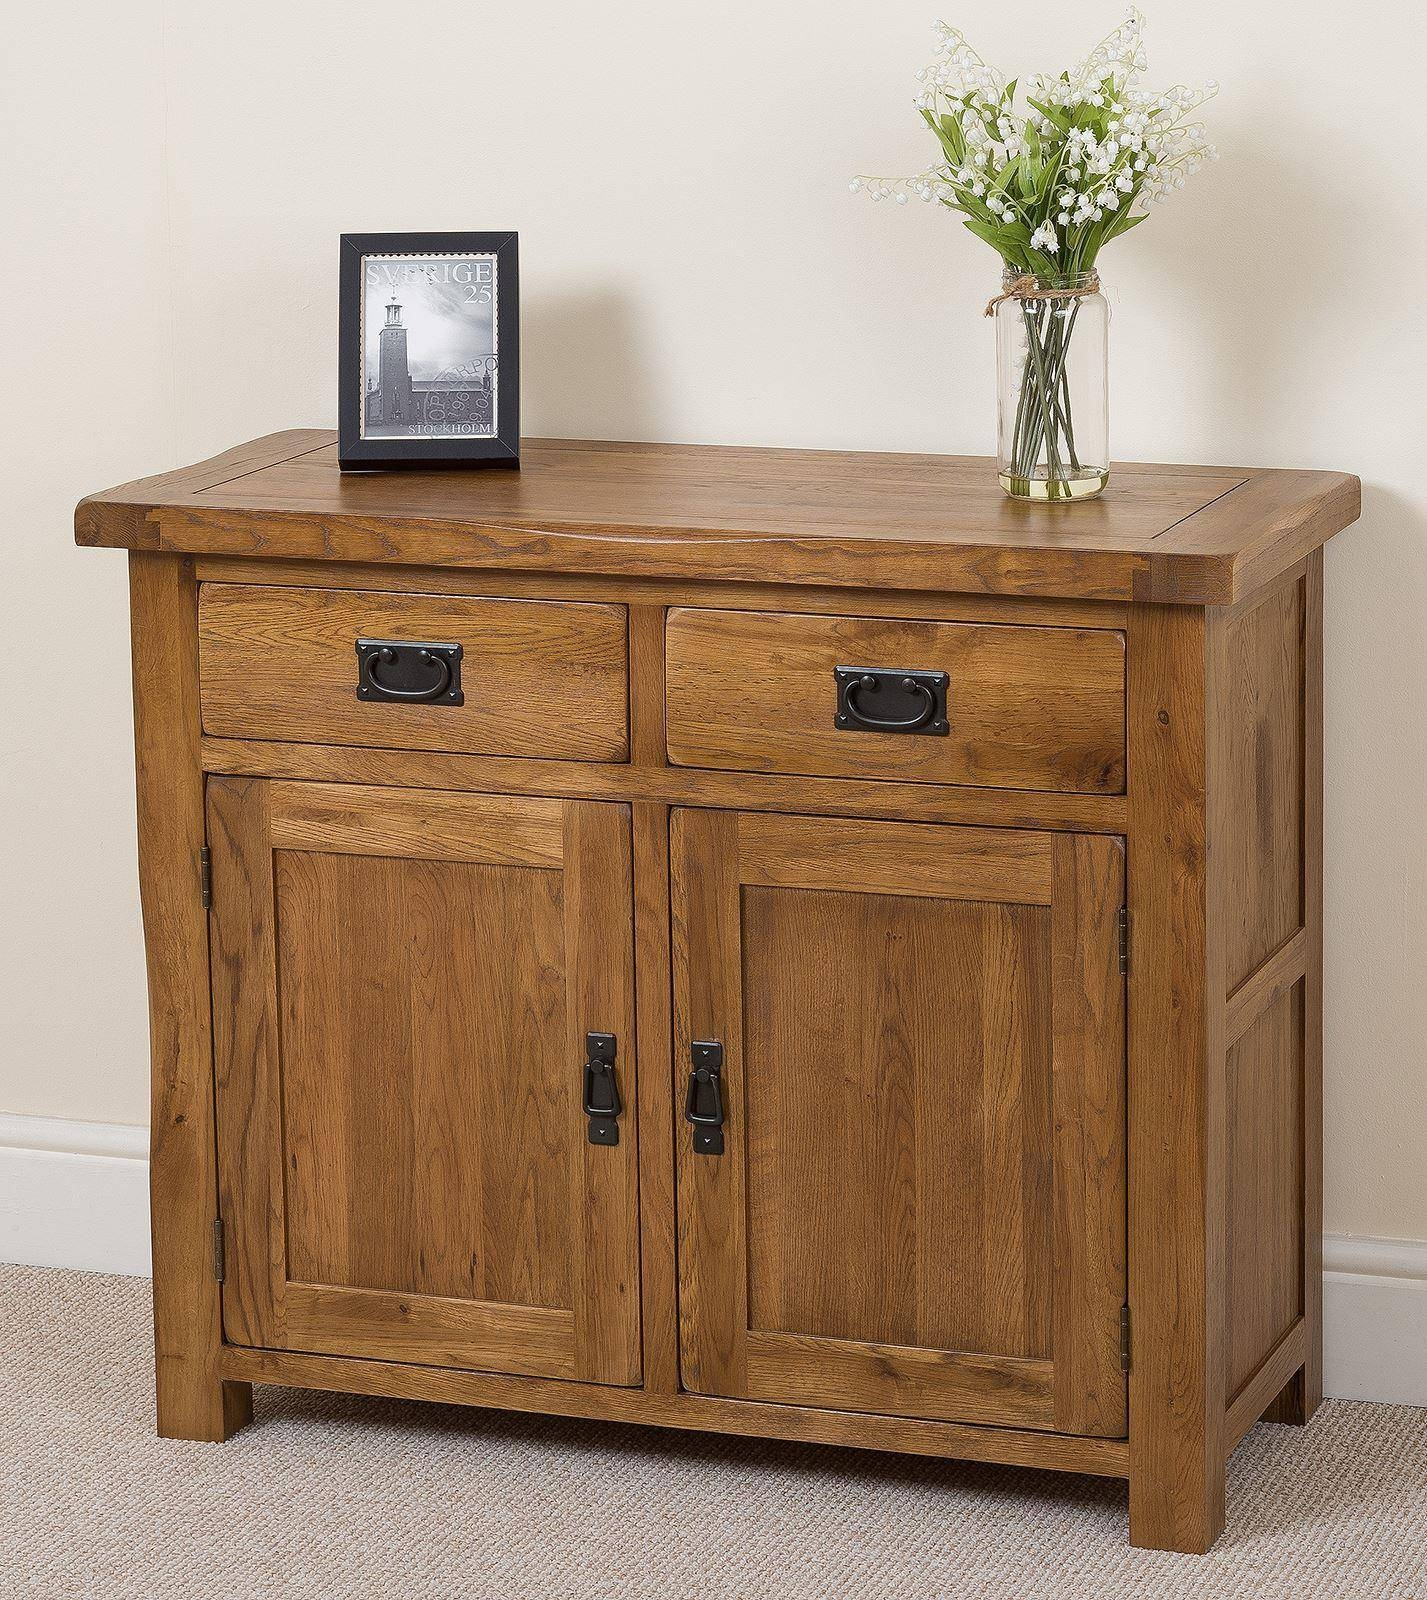 Cotswold Rustic Solid Oak Small Sideboard | Oak Furniture King in Small Wooden Sideboards (Image 11 of 30)